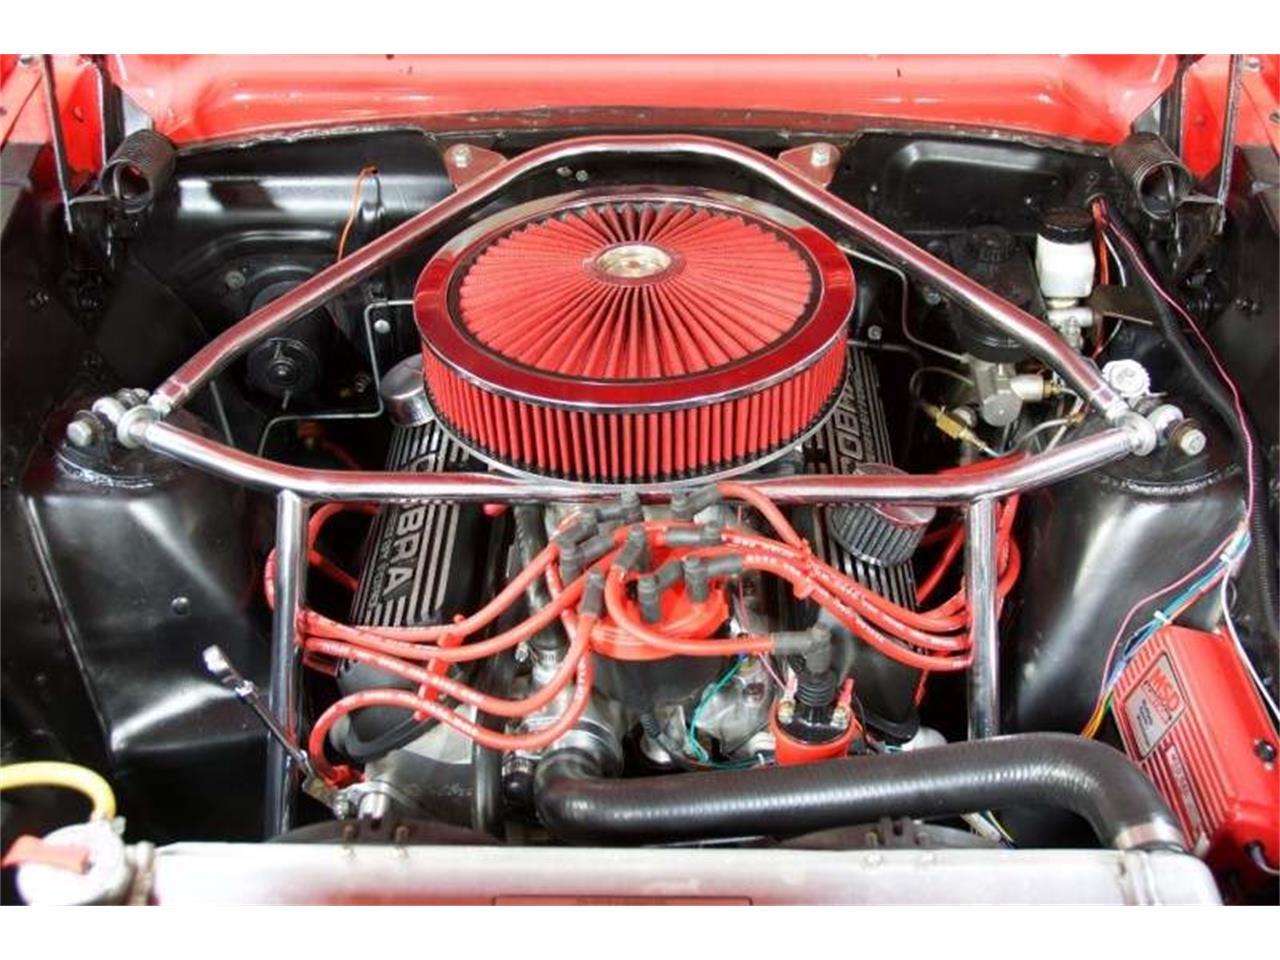 Large Picture of '64 Ford Falcon located in Milpitas California - $52,194.00 - LSP9